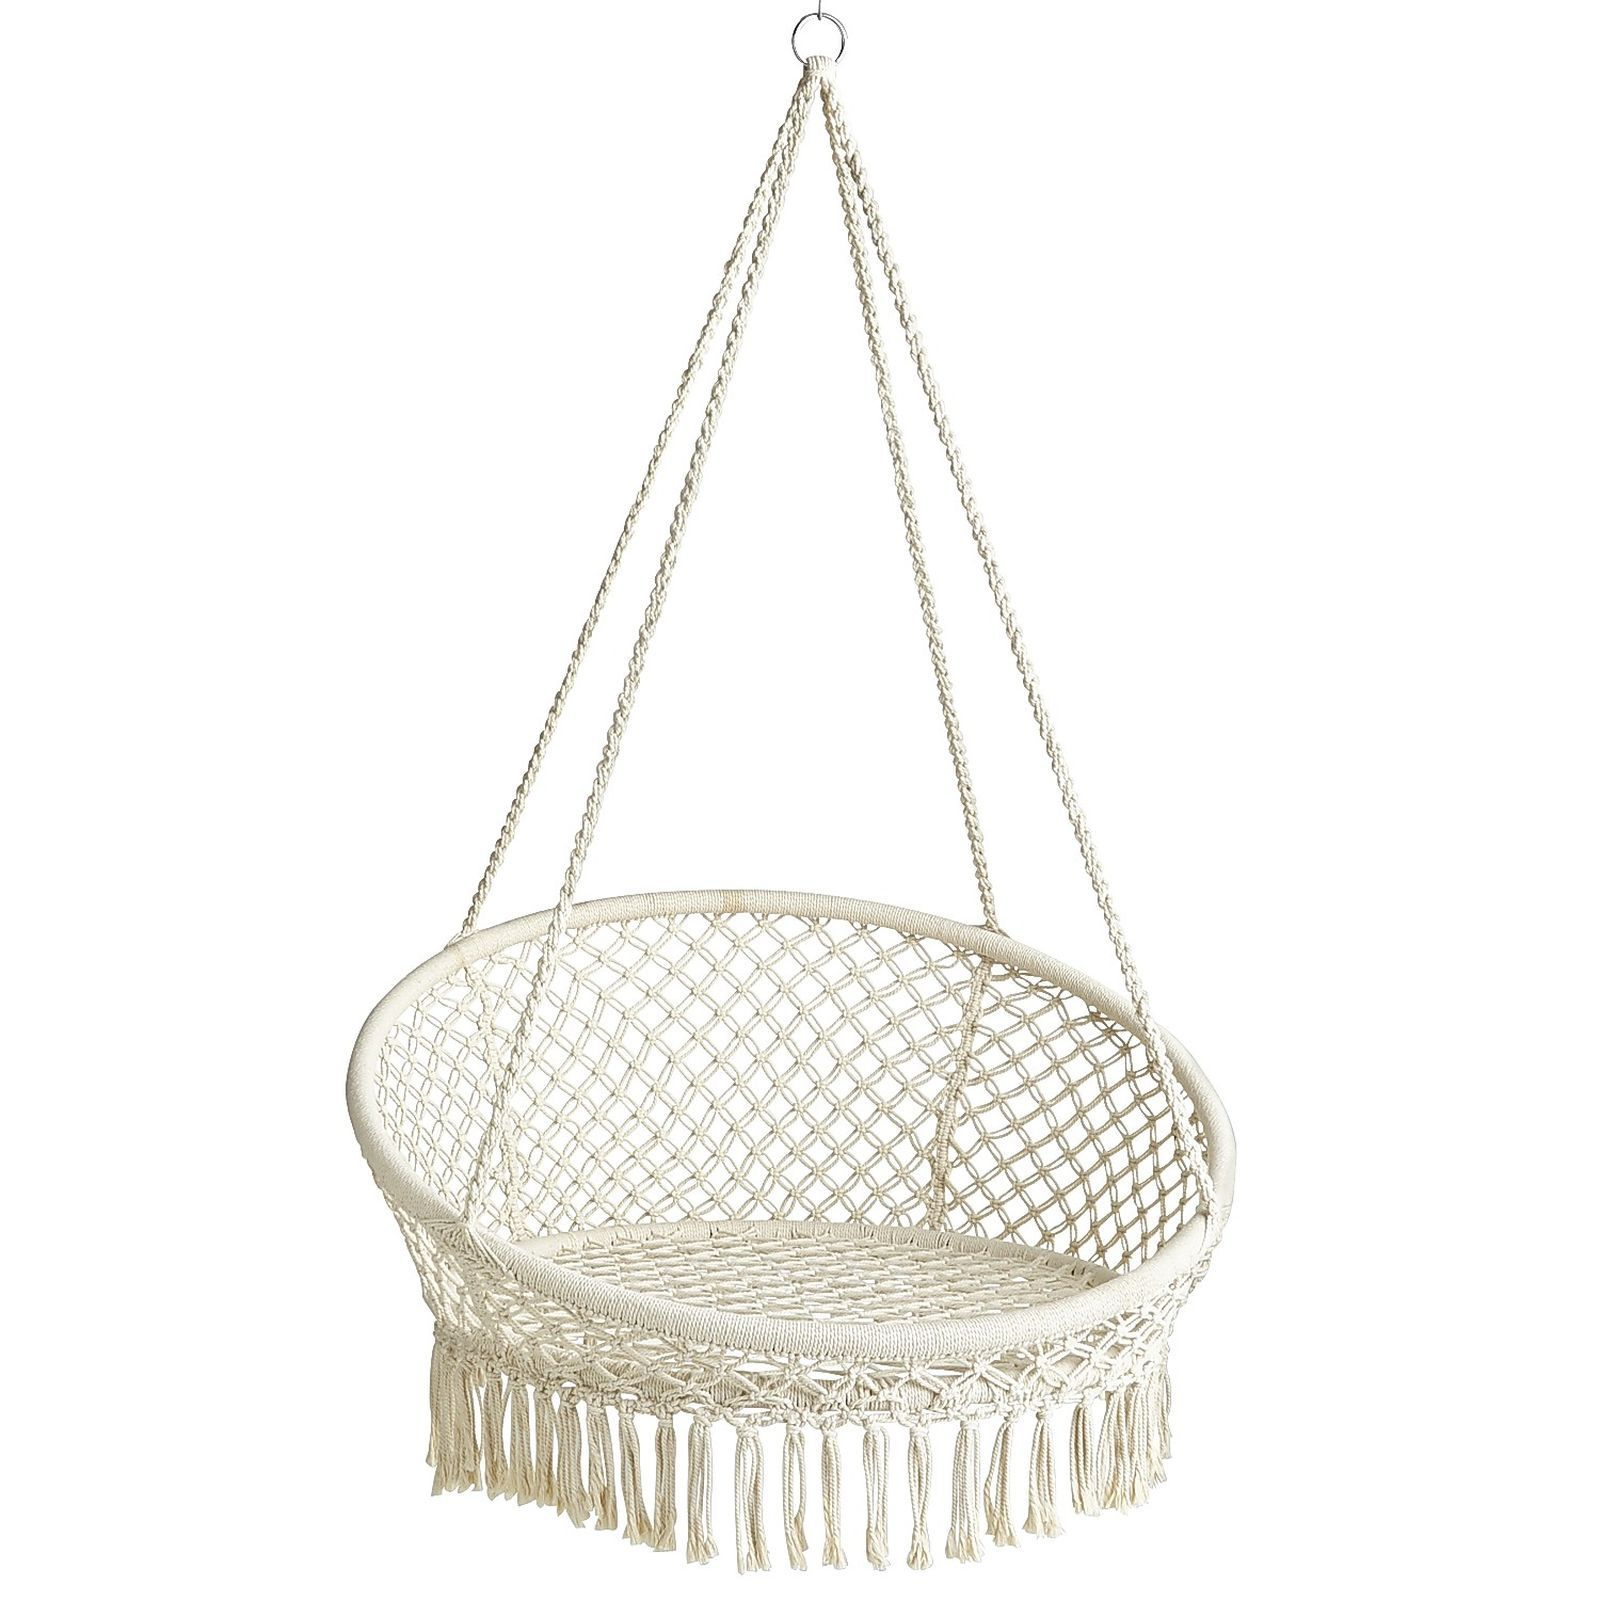 Macrame natural small hanging saucer chair outdoors pinterest